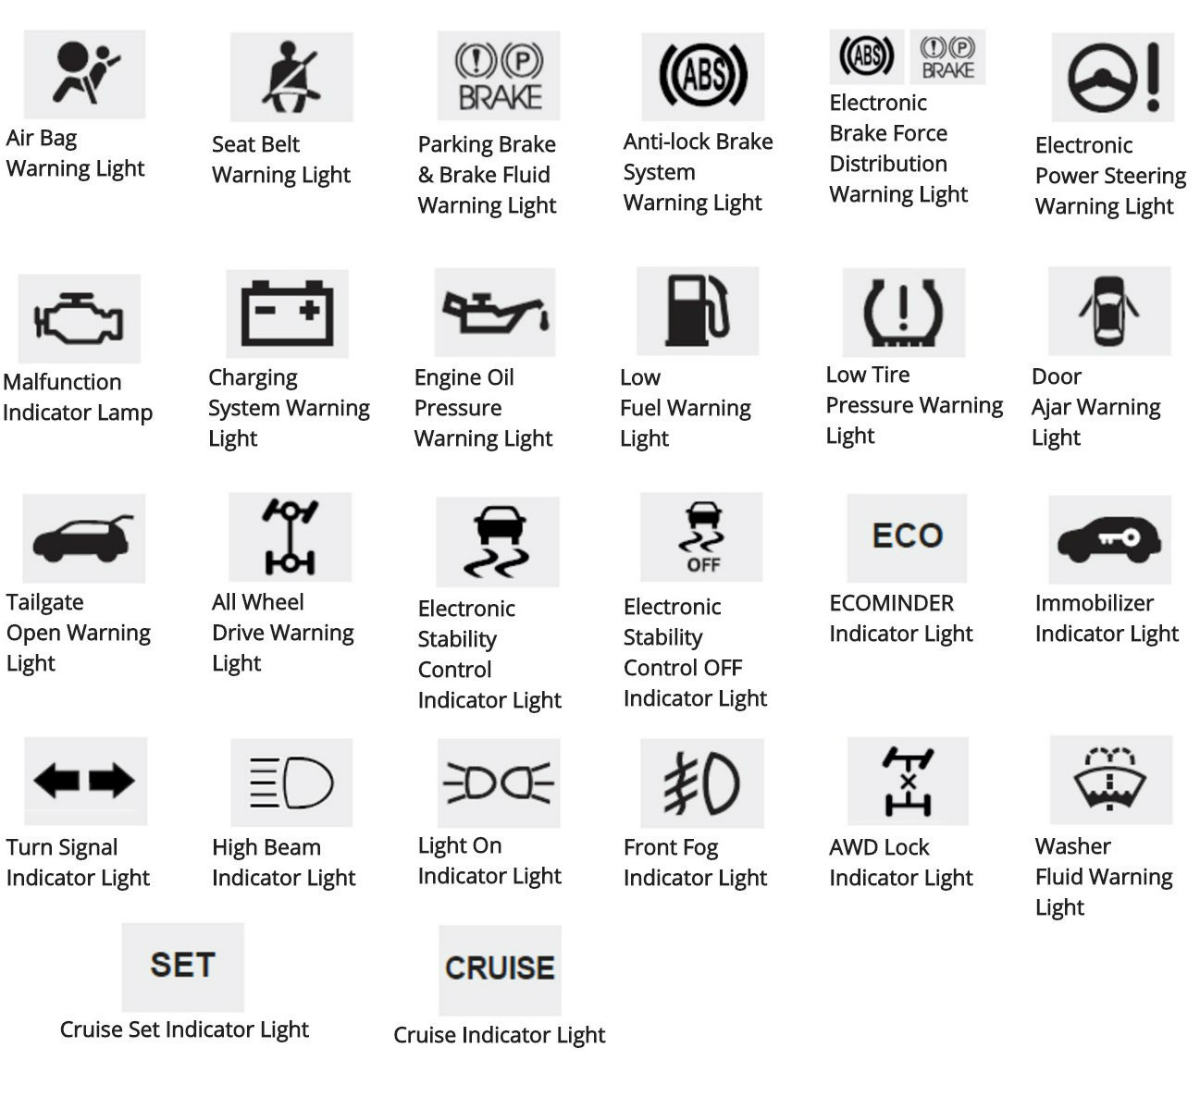 2008 Chrysler 300 Dashboard Symbols Carburetor Gallery